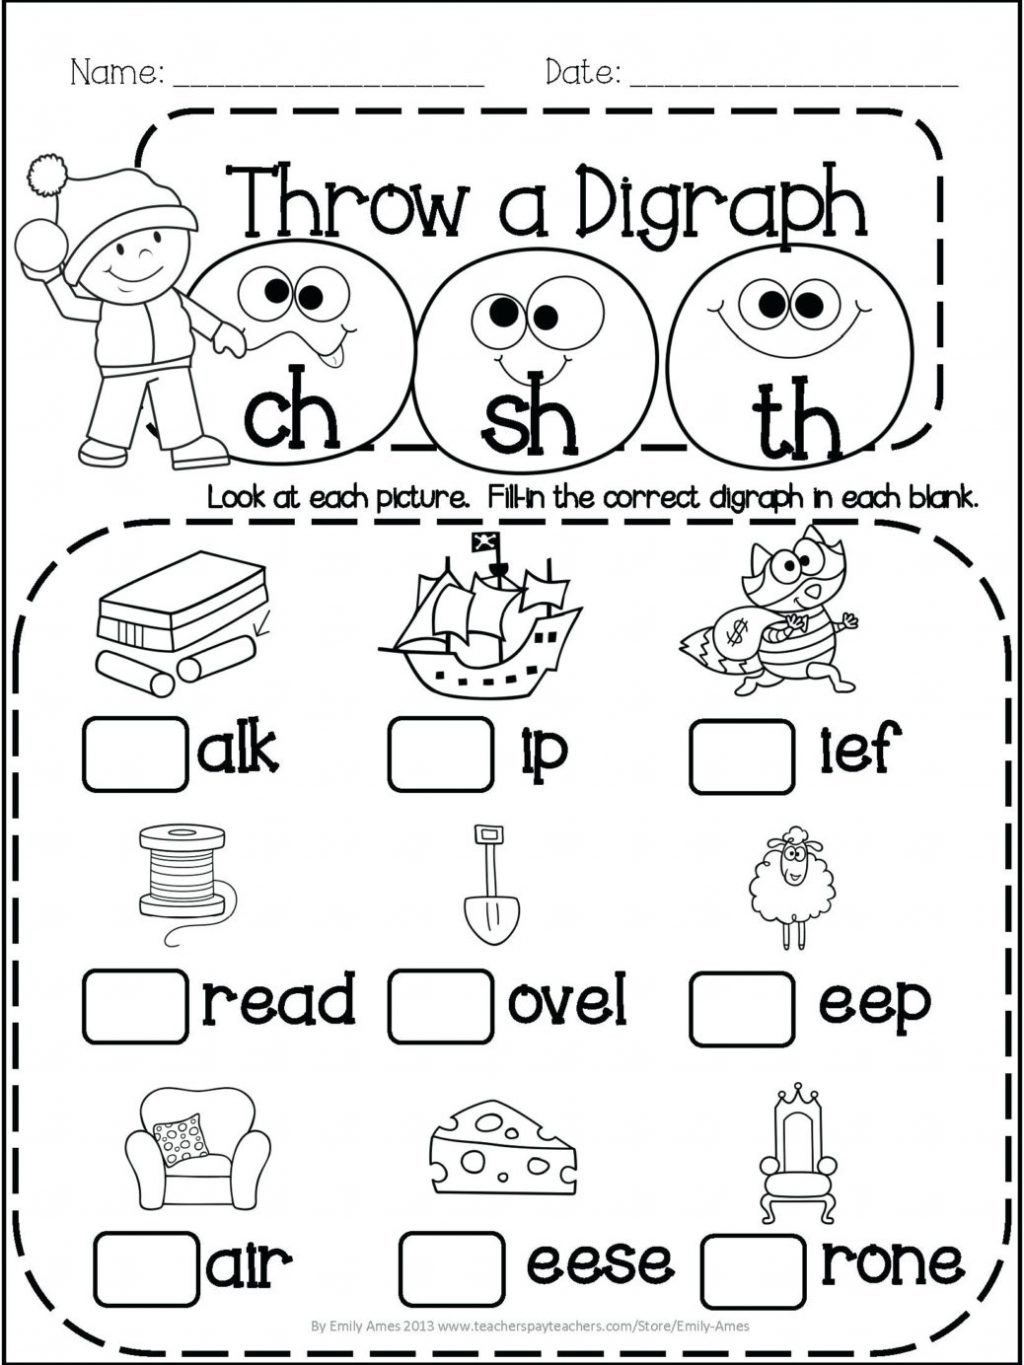 awesome 1st grade phonicsksheets image ideas stunning first reading prehension printables free for blending printable sign booksksheet fluency 1024x1365